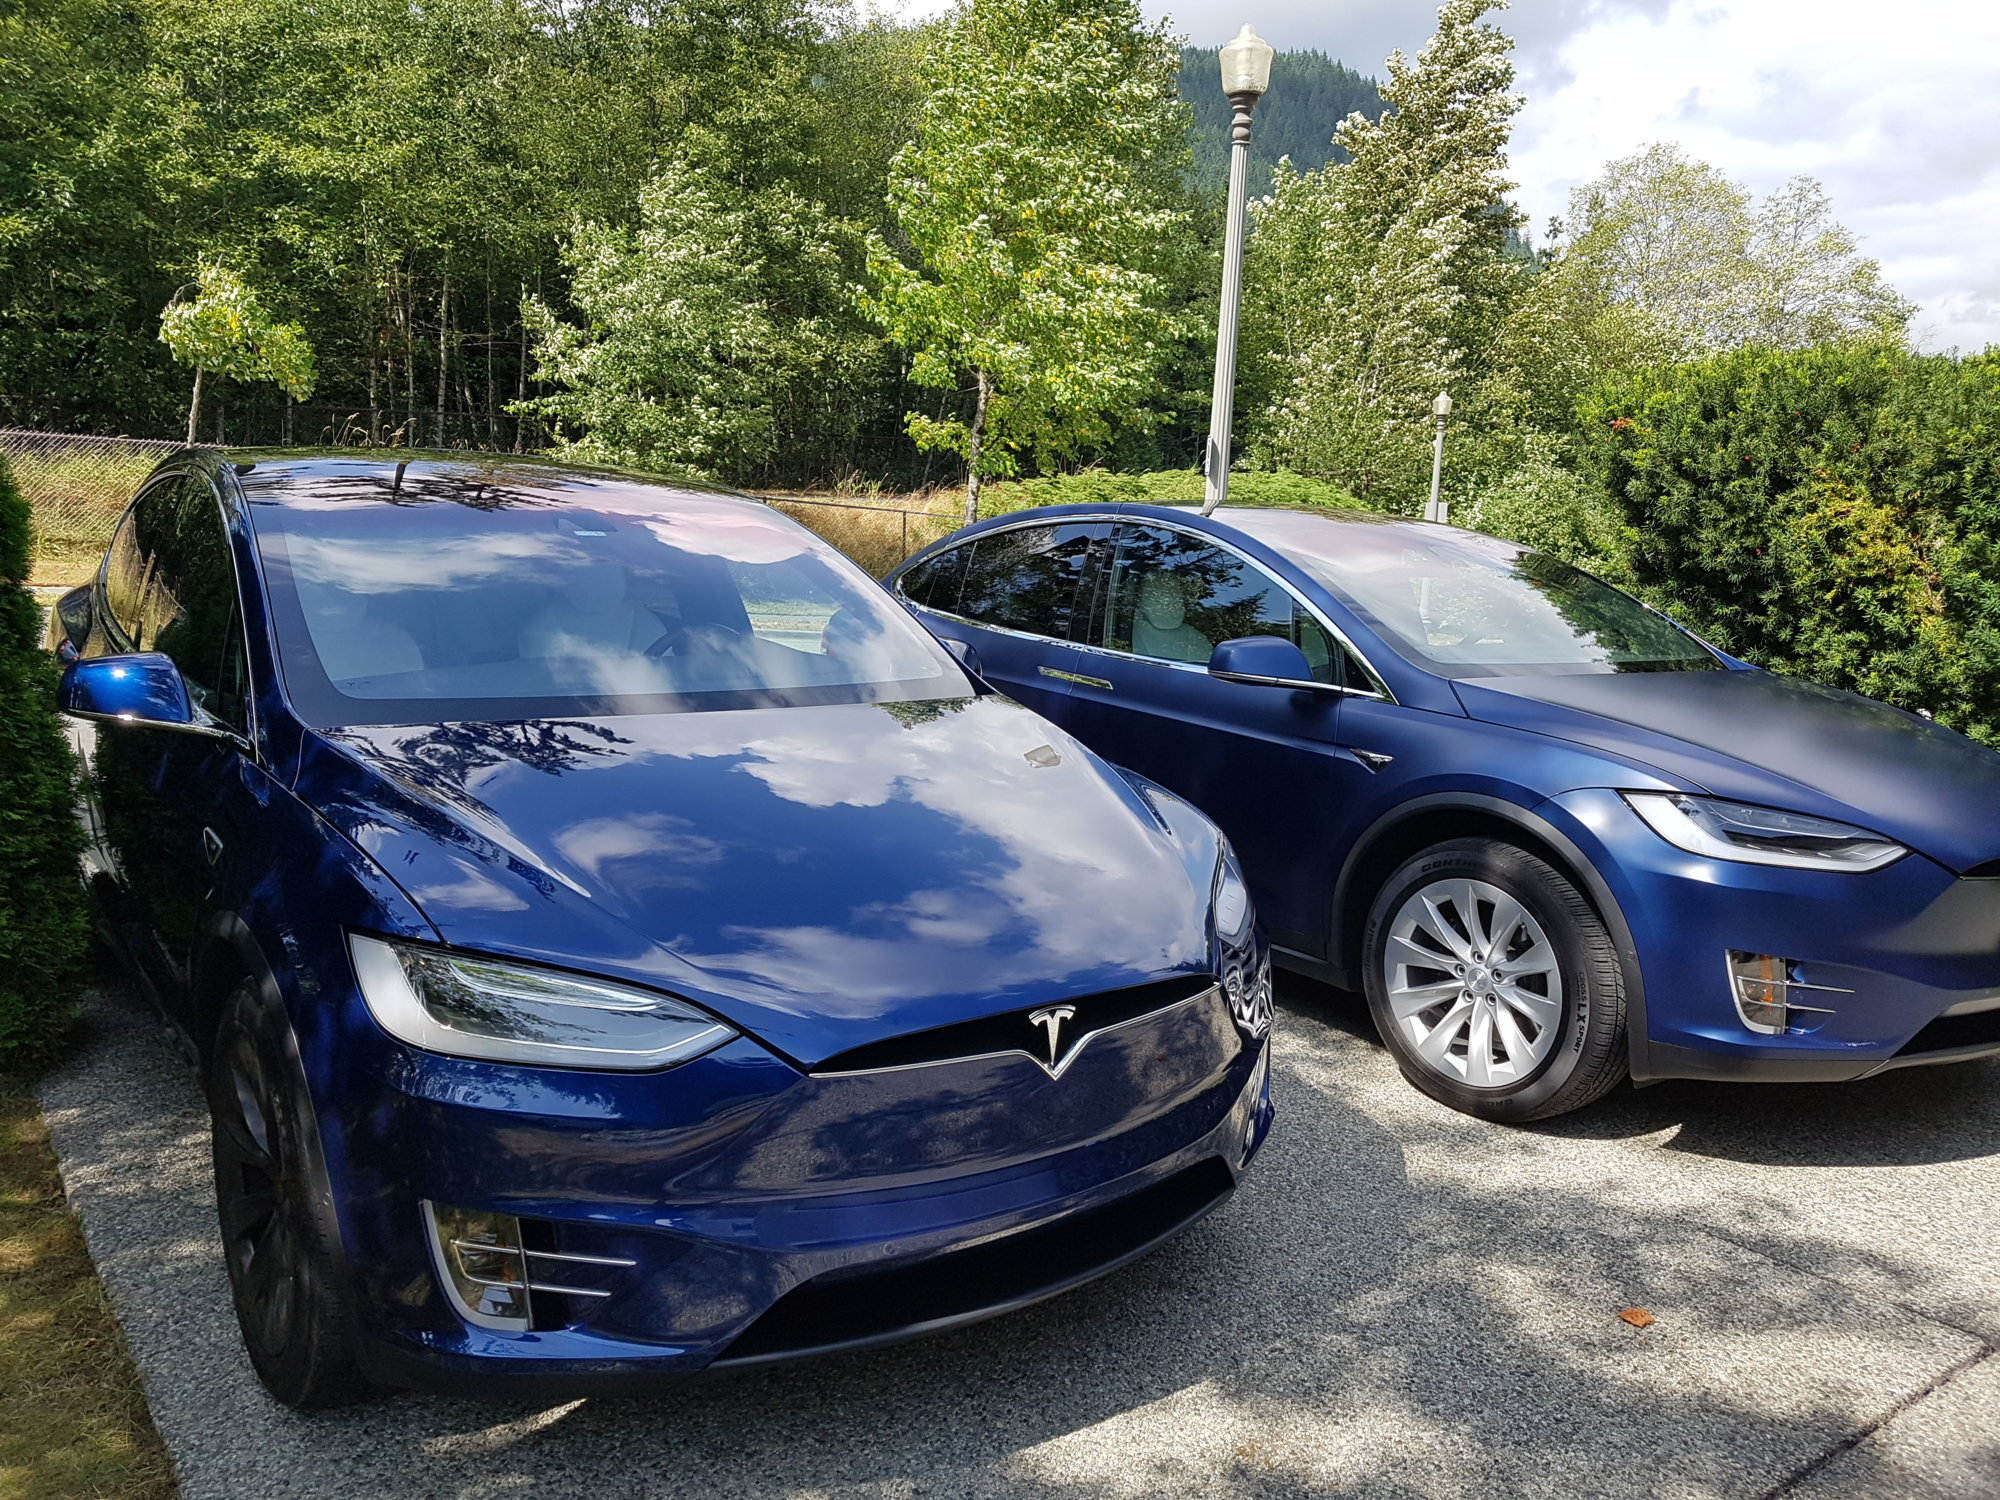 side by side tesla's one with matte finish one with shiny finish